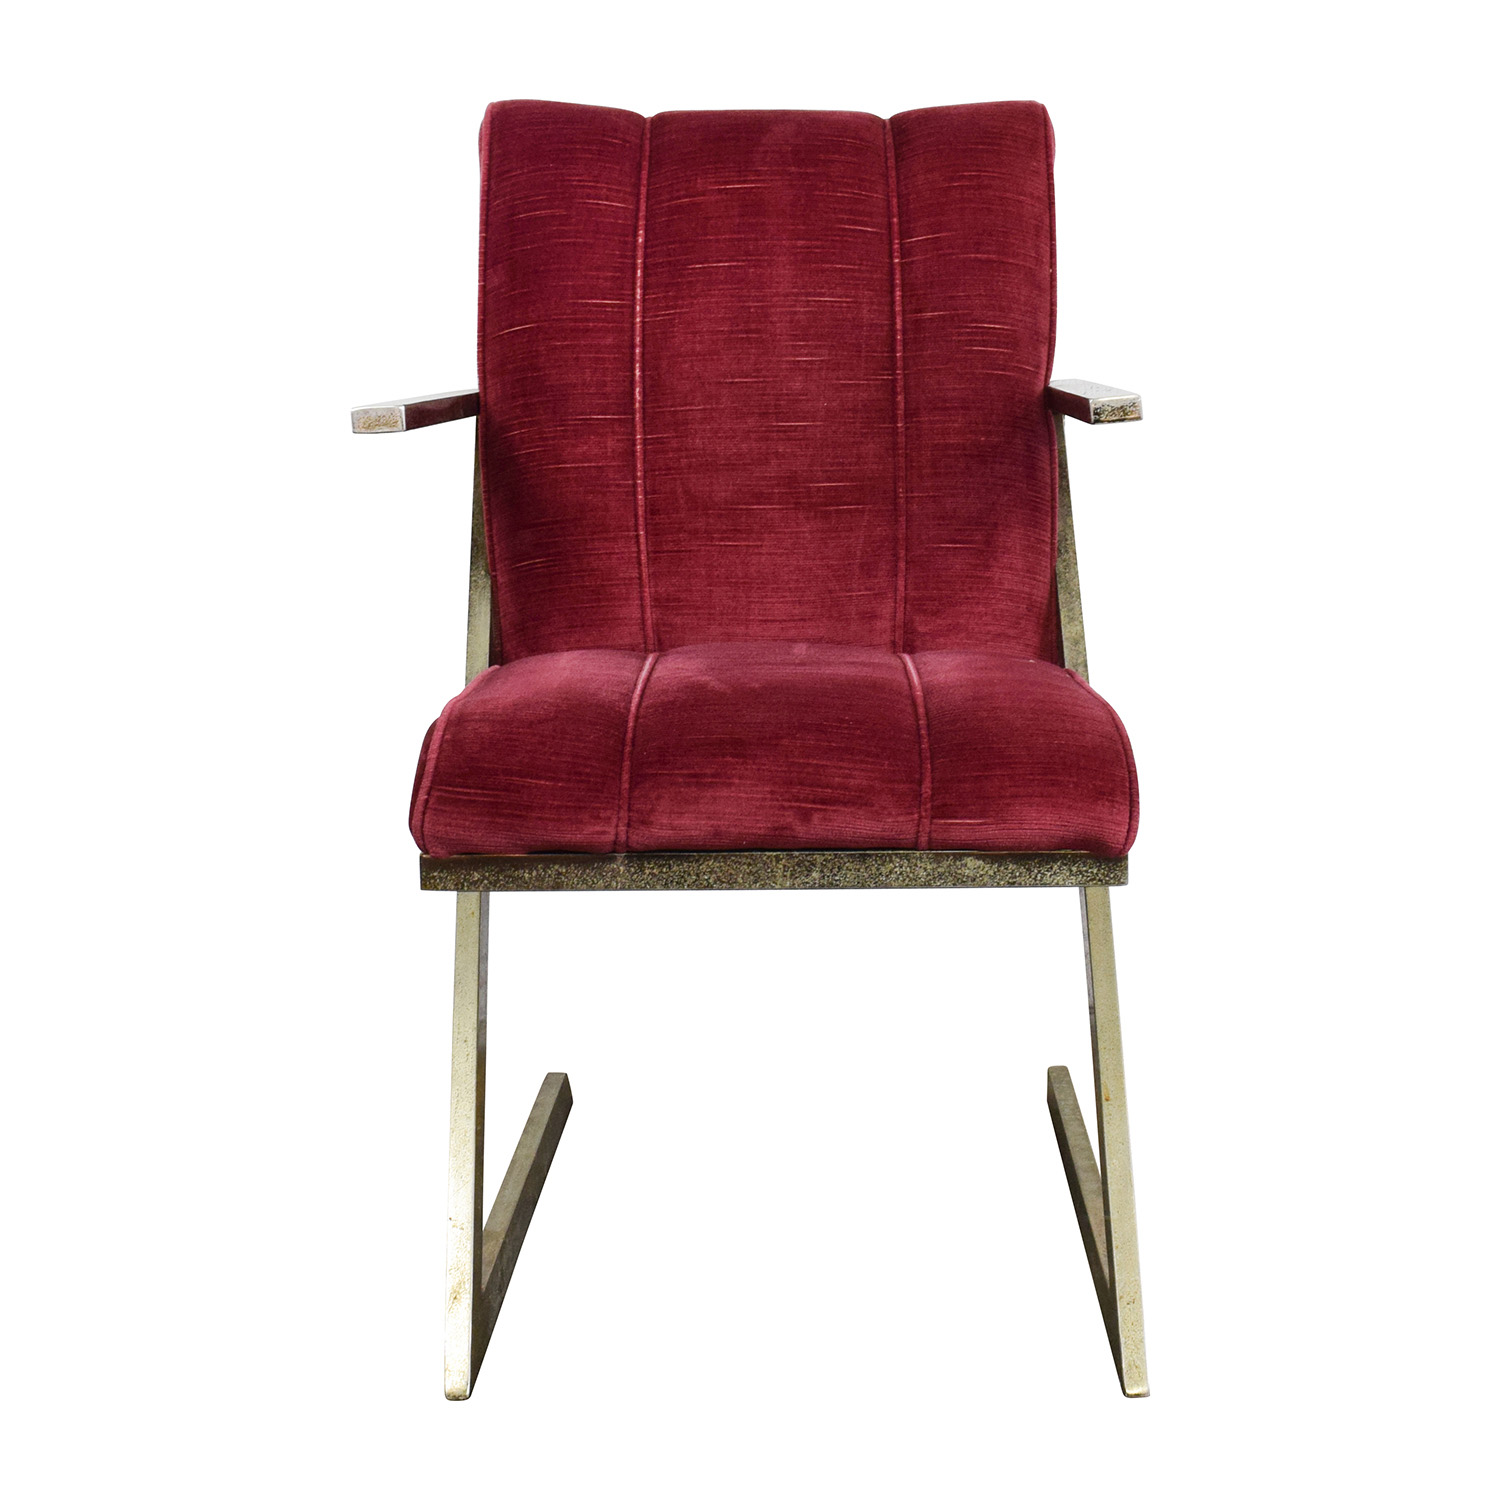 buy Vintage Plush Burgundy Velvet Chair Chairs